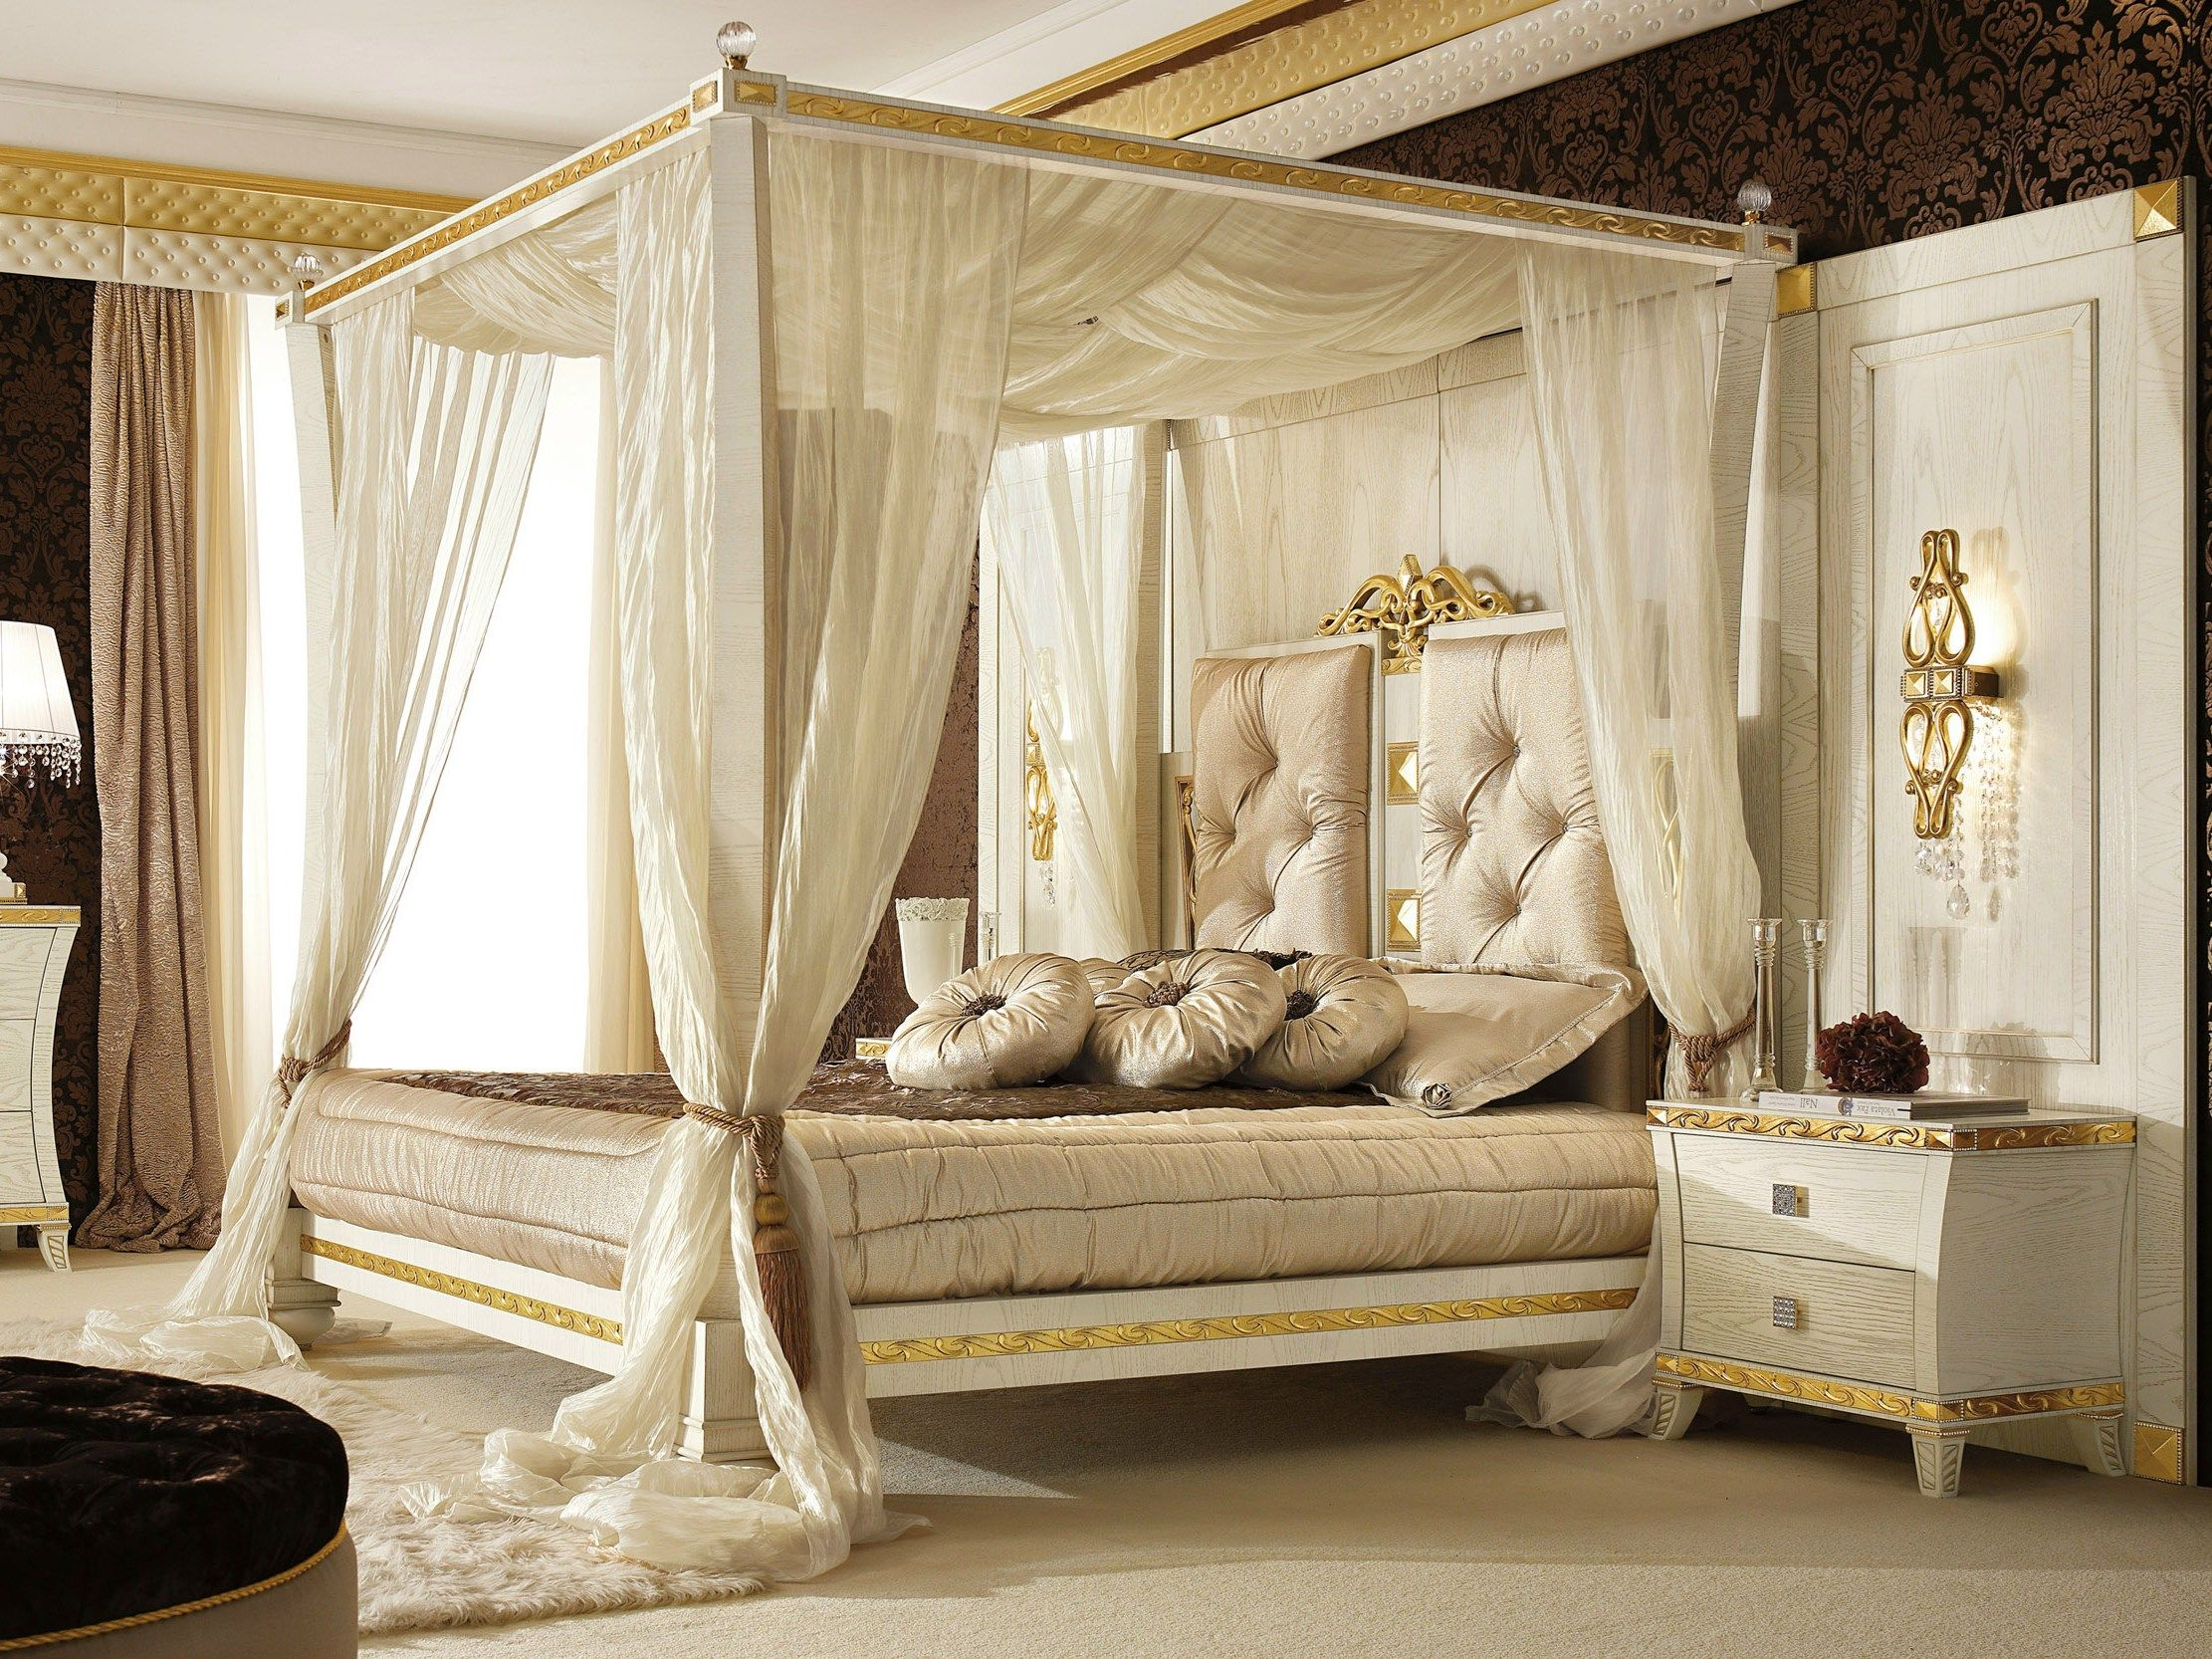 Bed With A Canopy vintage canopy beds - home design